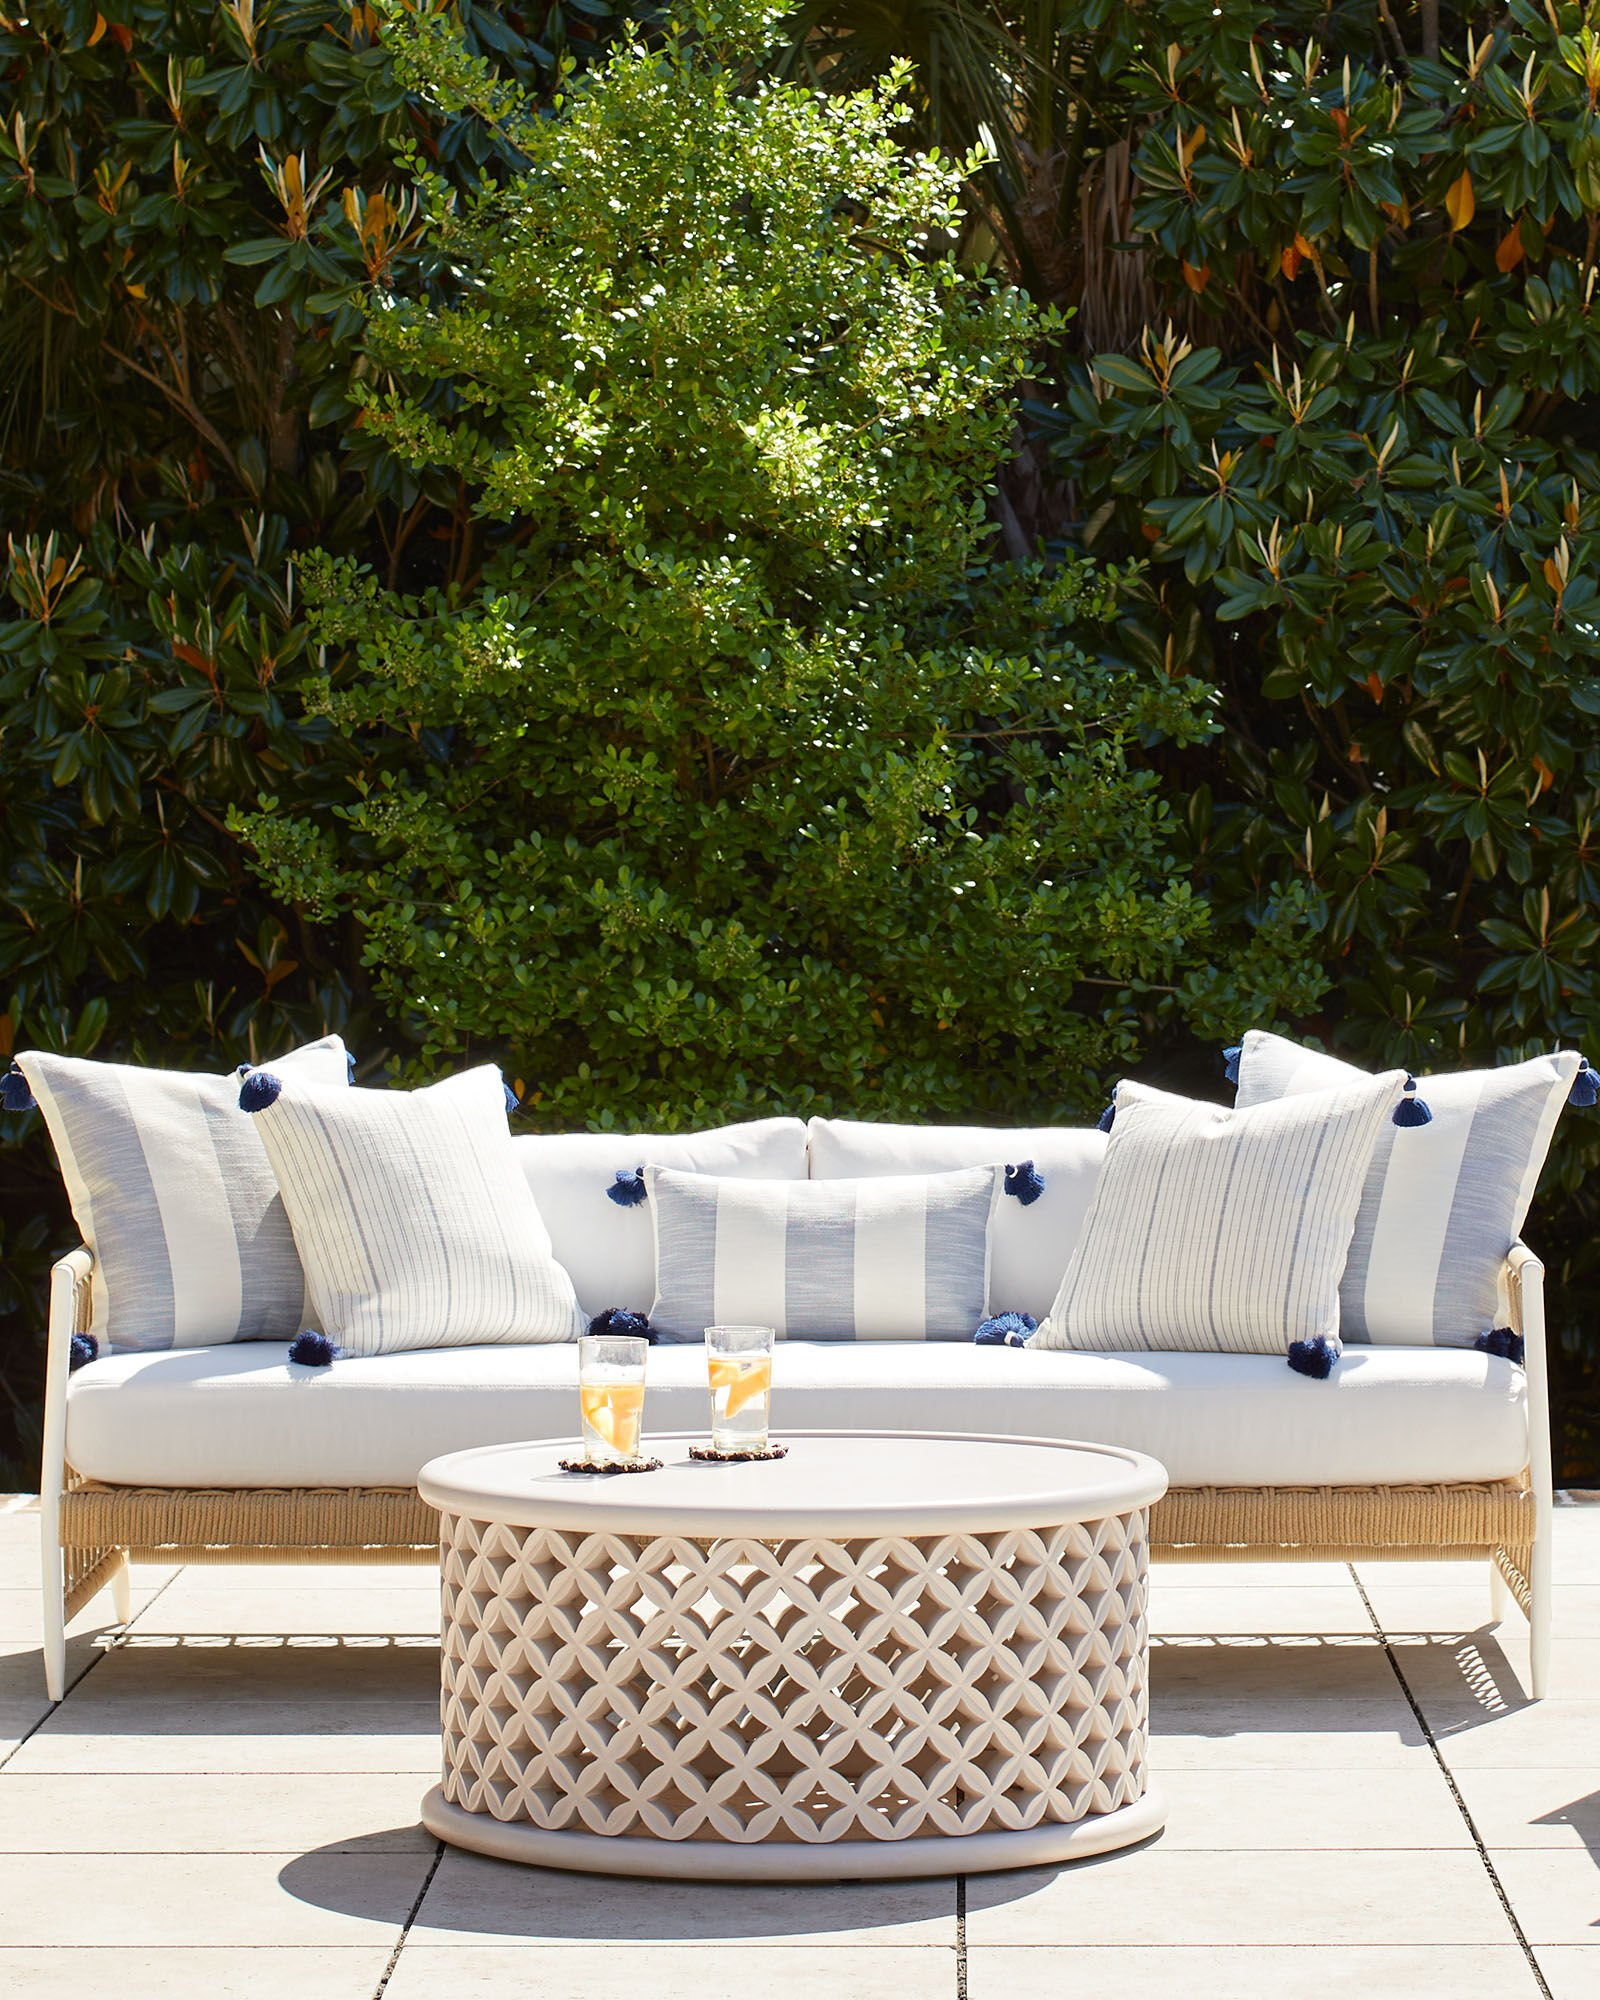 outdoor sofa on patio with white cushions and blue and white striped pillows and round white coffee table